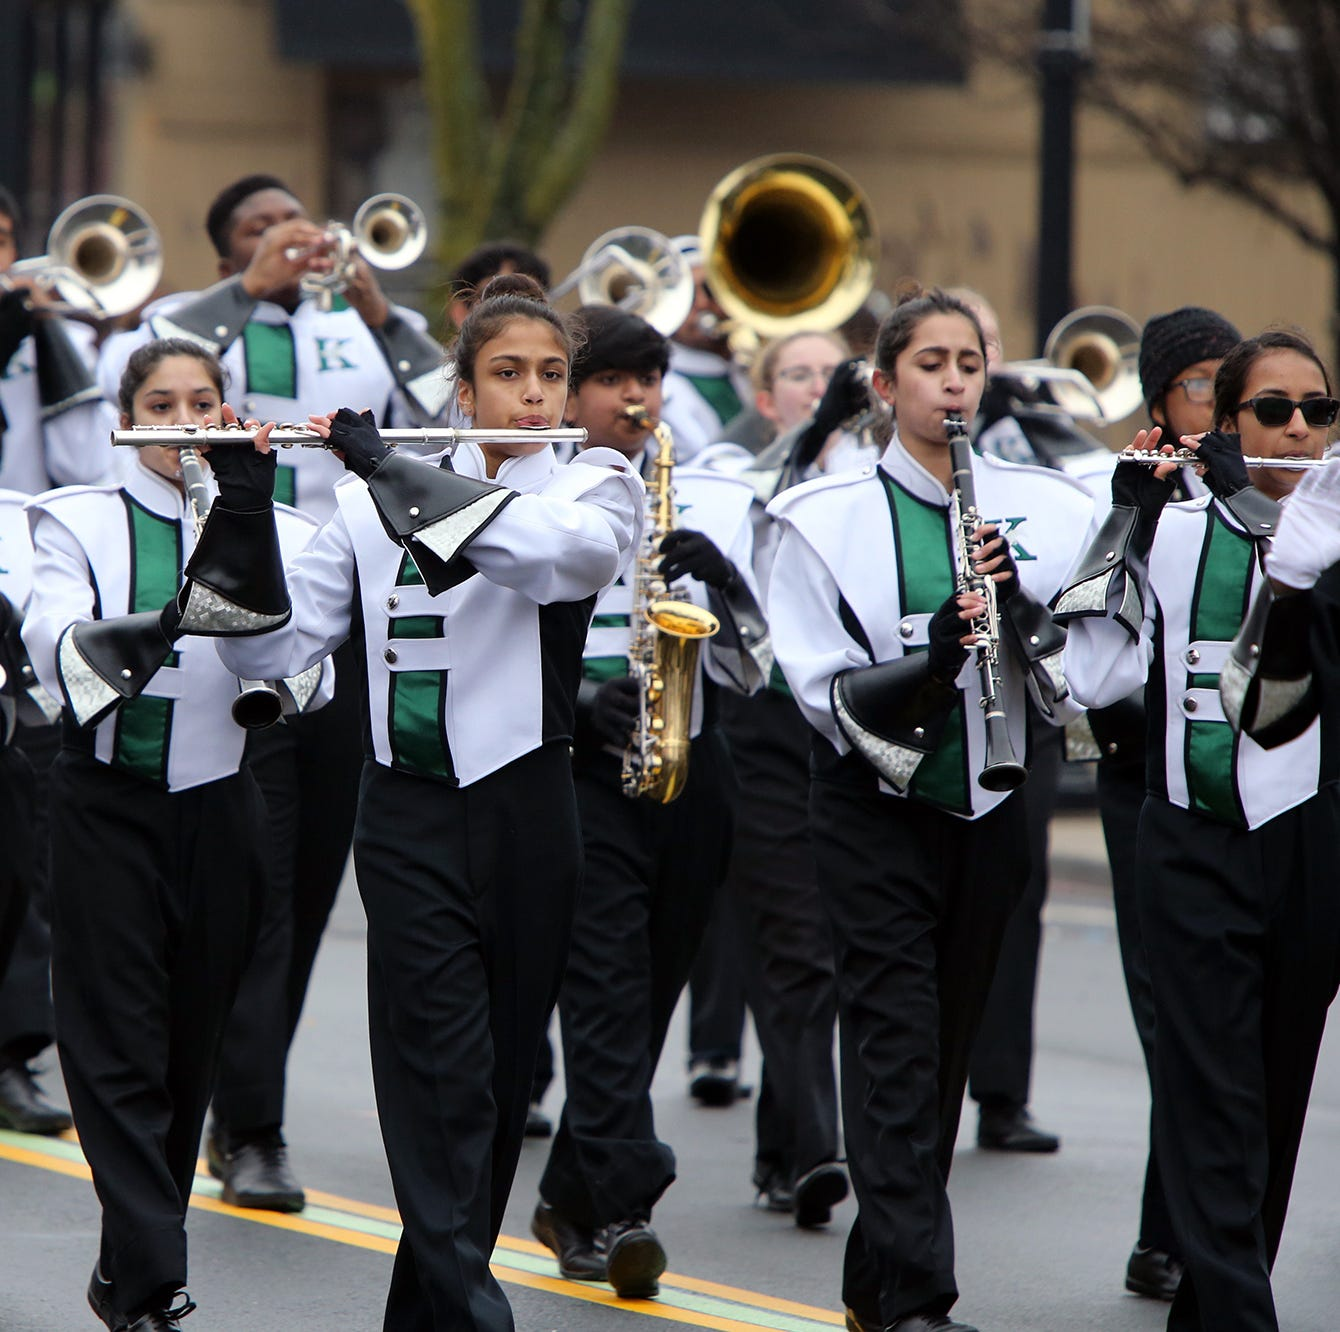 Woodbridge St. Patrick's Day Parade: Spirits not dampened by rain